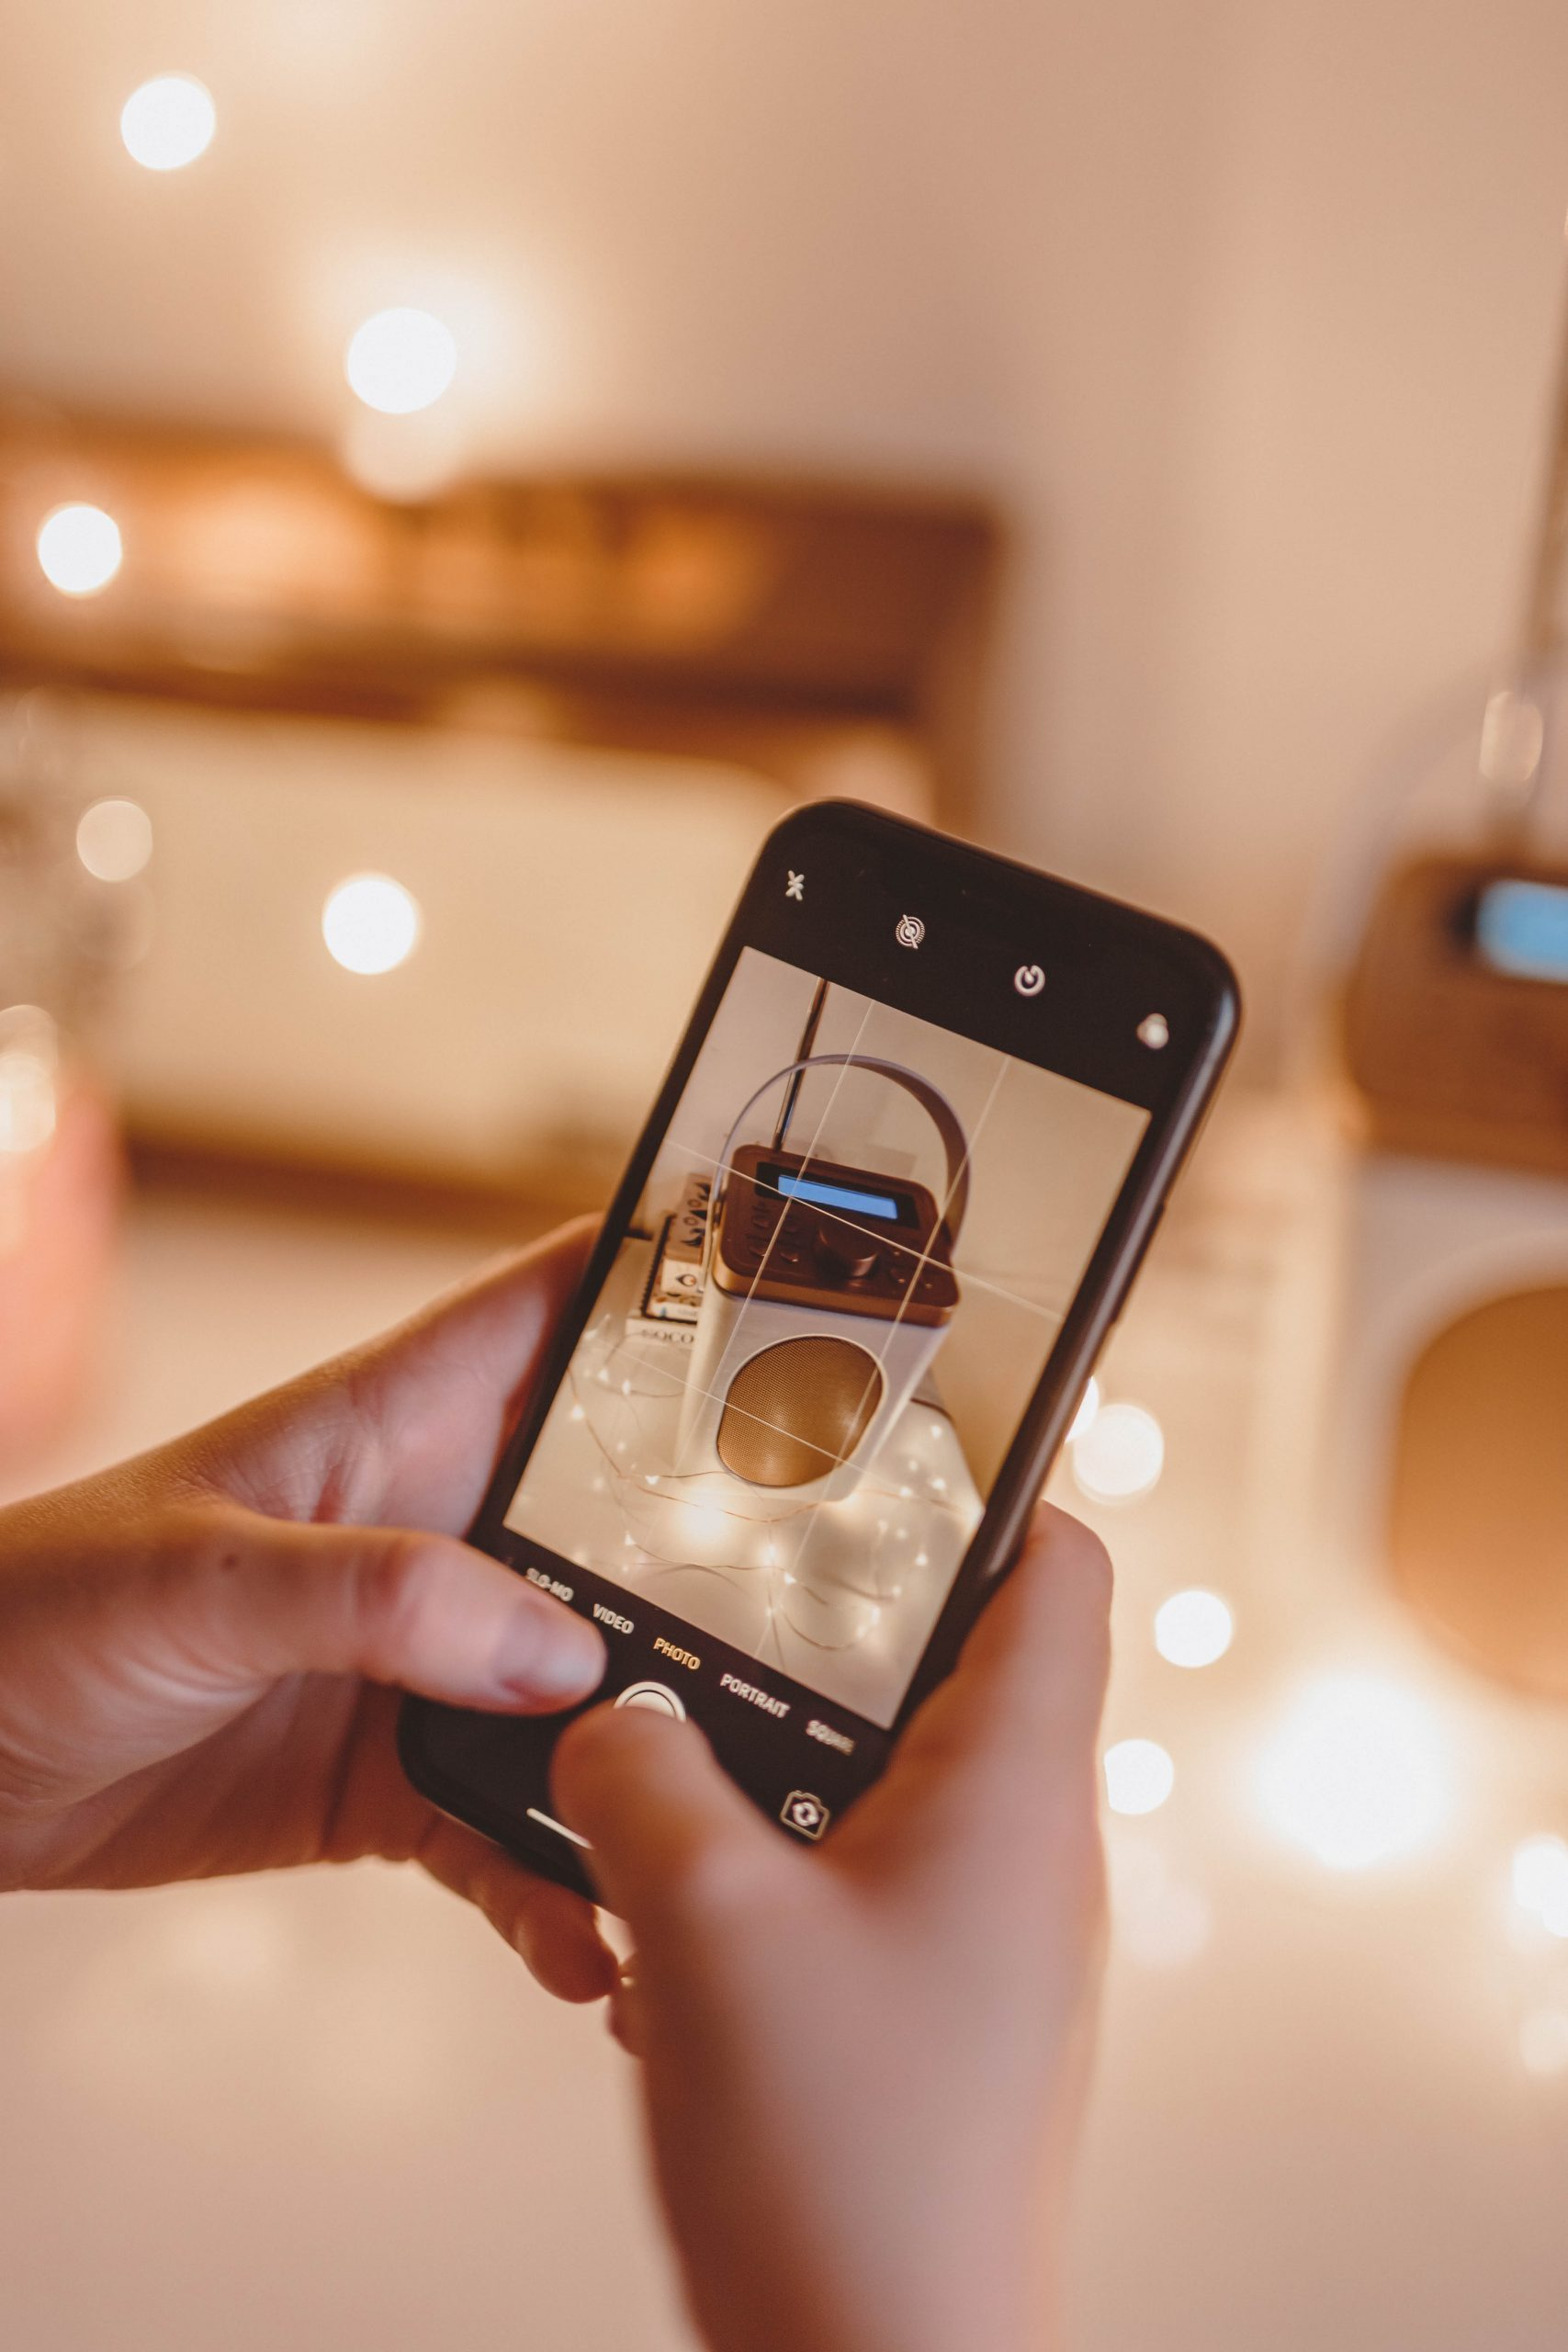 How to take better smartphone images, better iphone photos, better samsung phone photos, how to improve photography, smartphone photography, iphoneography, photography tips,